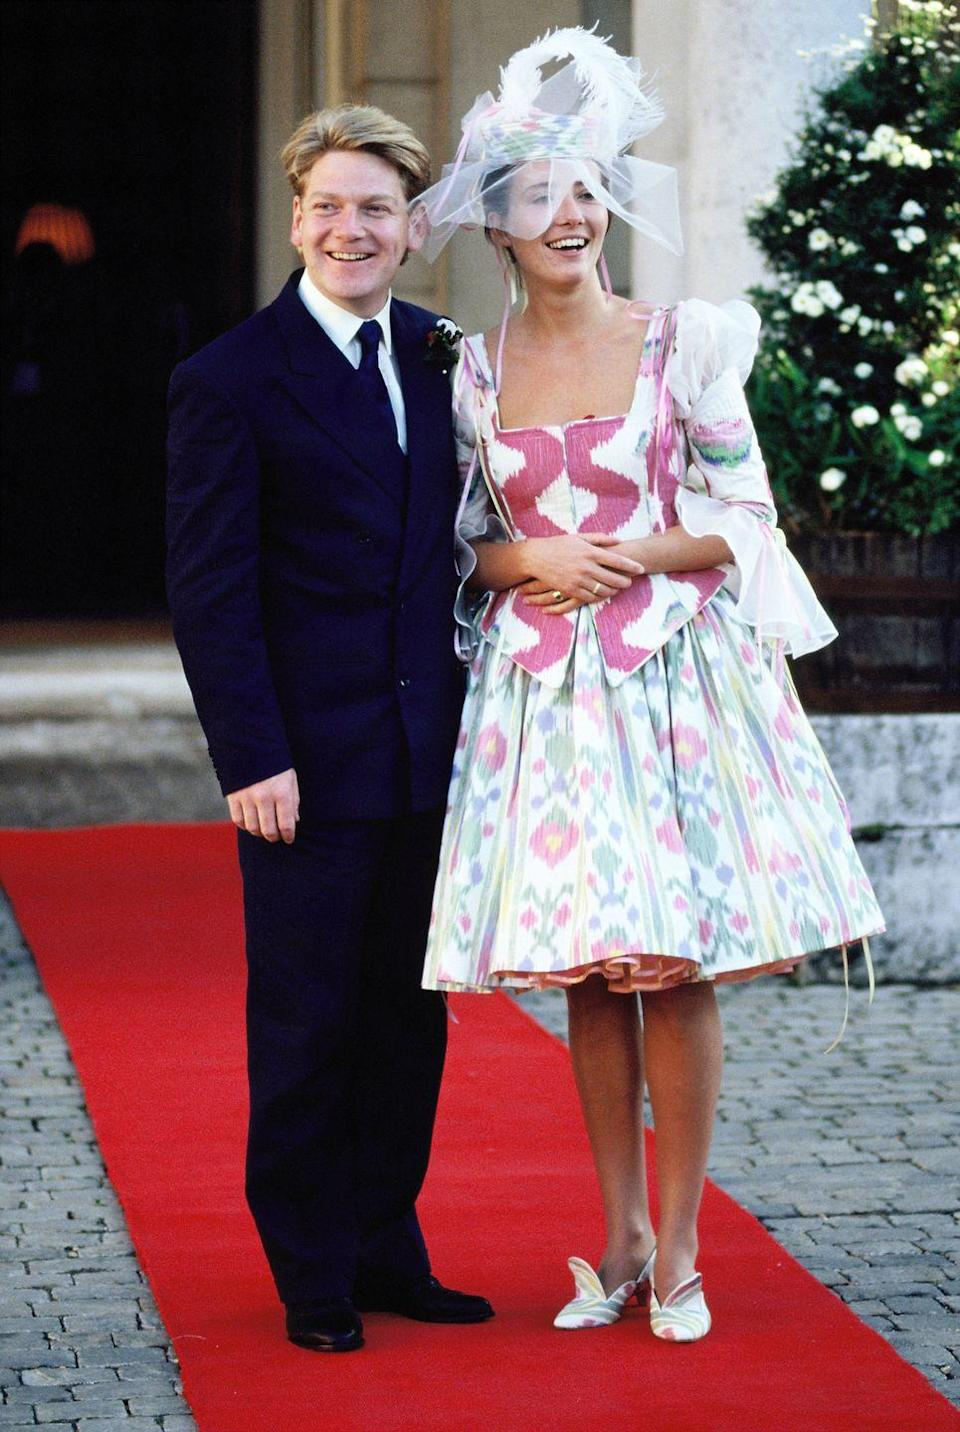 <p>Emma Thompson didn't just opt for a colour on her wedding day, she went for full multi-coloured joy when she tied the knot with Kenneth Branagh. Plus, that milkmaid dress shape is definitely back in fashion 20+ years later. Yay for the '80s.</p>